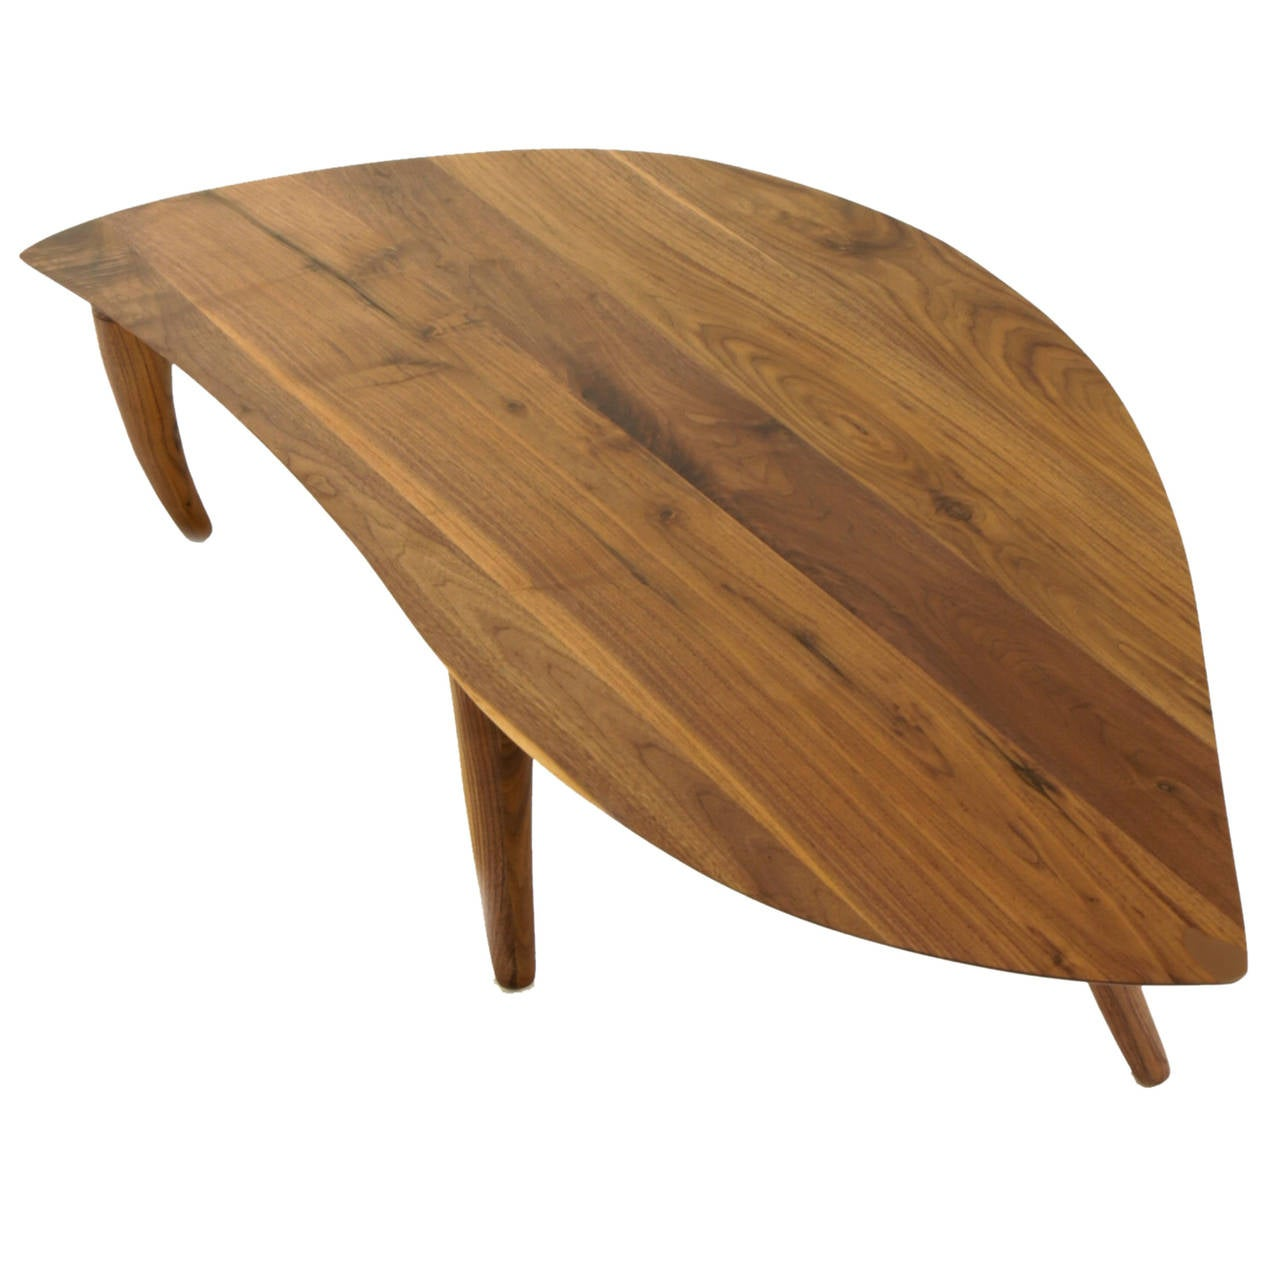 Sculptural Walnut Coffee Table With Curved Legs At 1stdibs